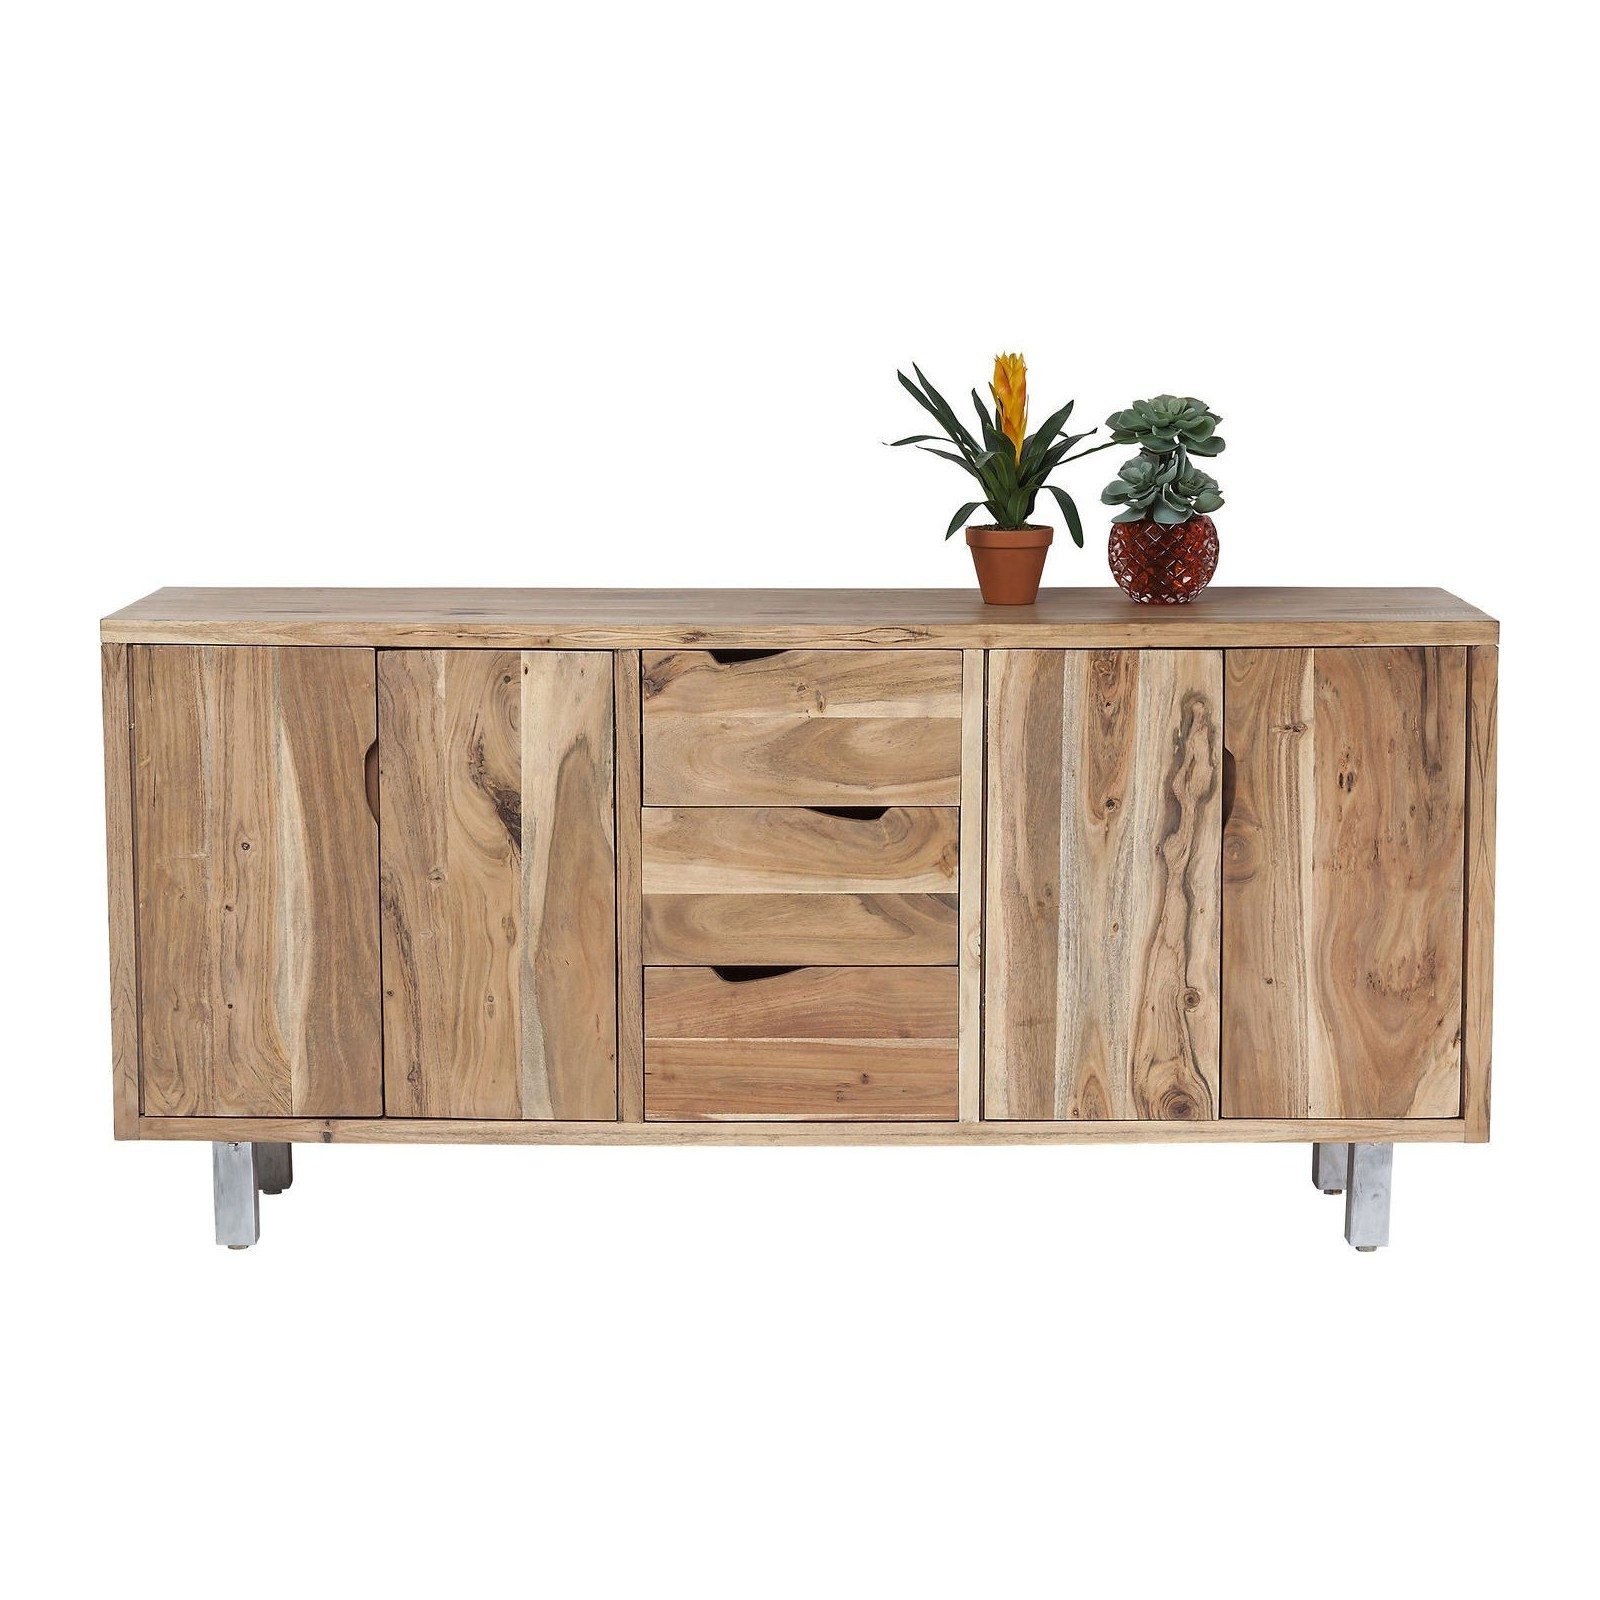 buffet scandinave en bois pure nature kare design. Black Bedroom Furniture Sets. Home Design Ideas